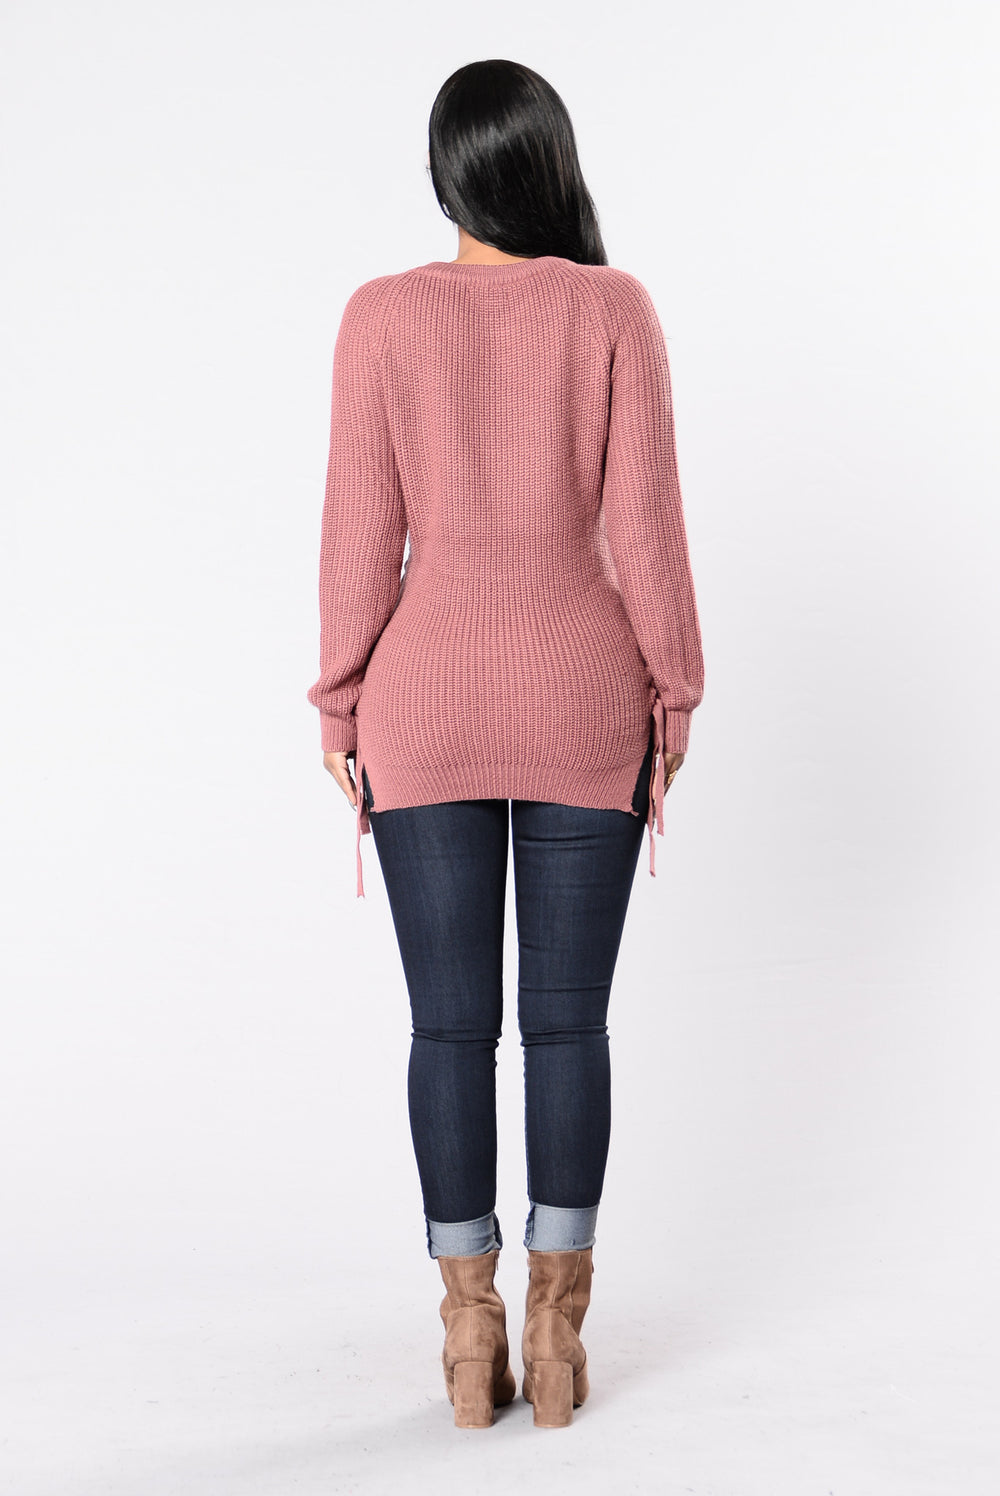 Braided Sweater - Red Bean